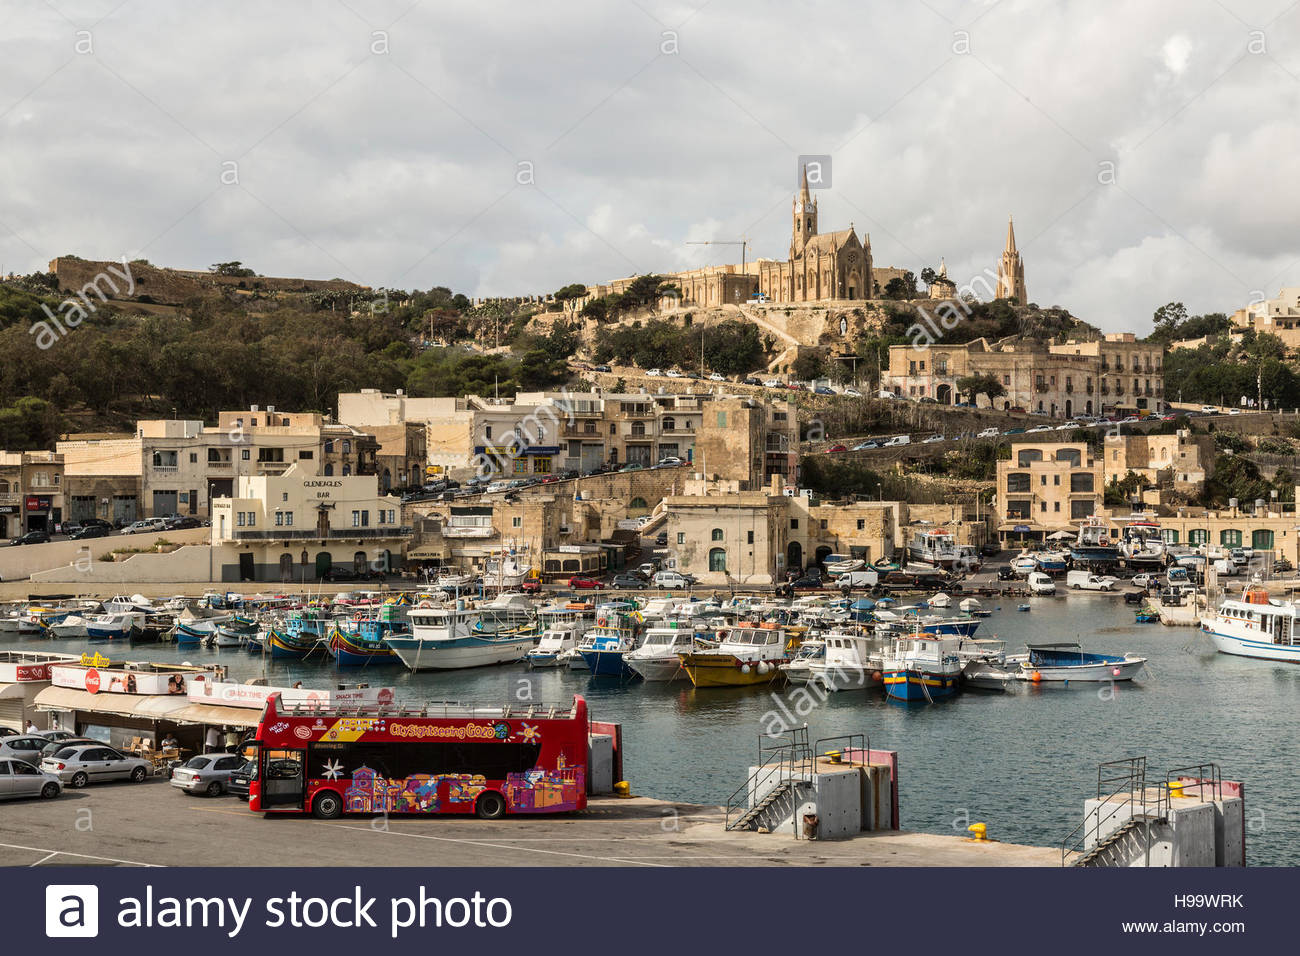 Mgarr harbour and town on Gozo, Malta - Stock Image